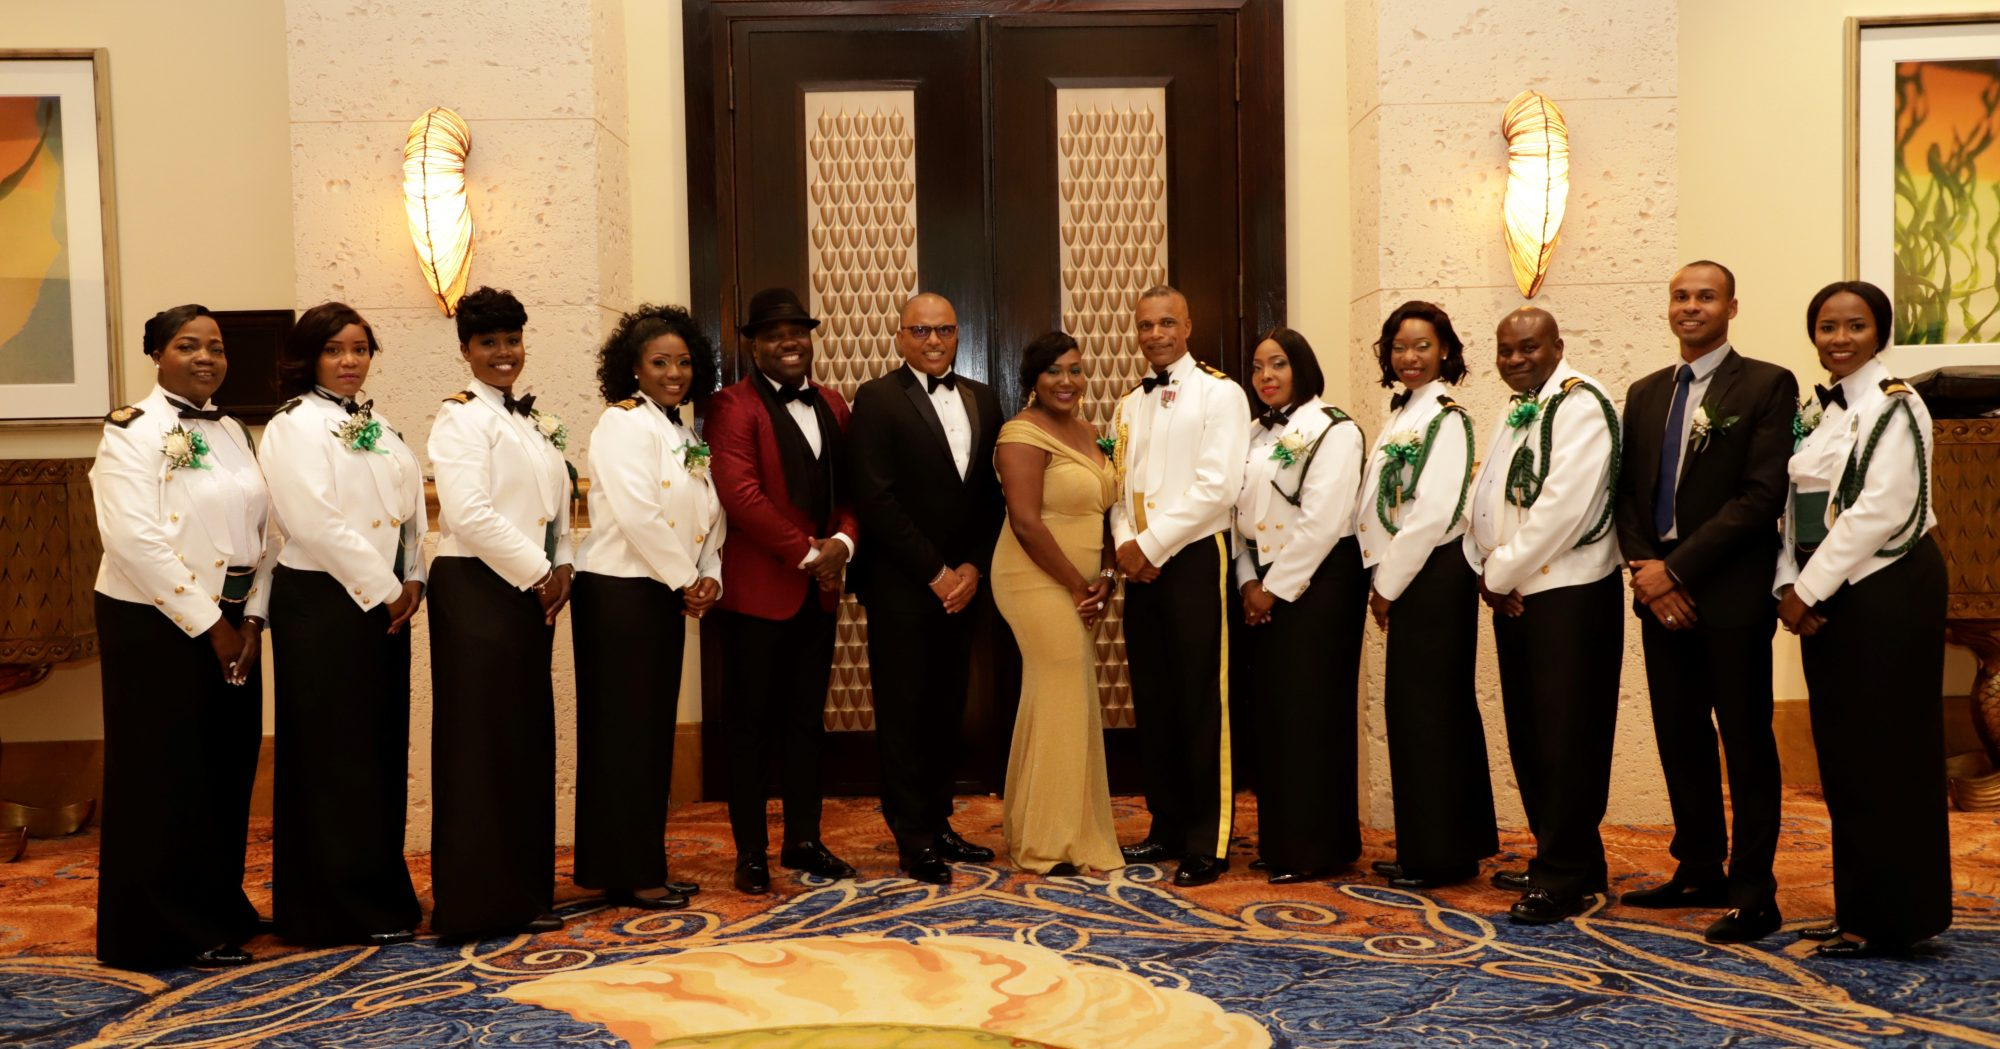 Commodore Tellis Bethel; The Honorable Marvin Dames; Lieutenant Commander Sonia Miller, Chairperson of the RBDF Military Ball and committee members. Also shown is Demetrius Smith, Master of Ceremony for the occasion.